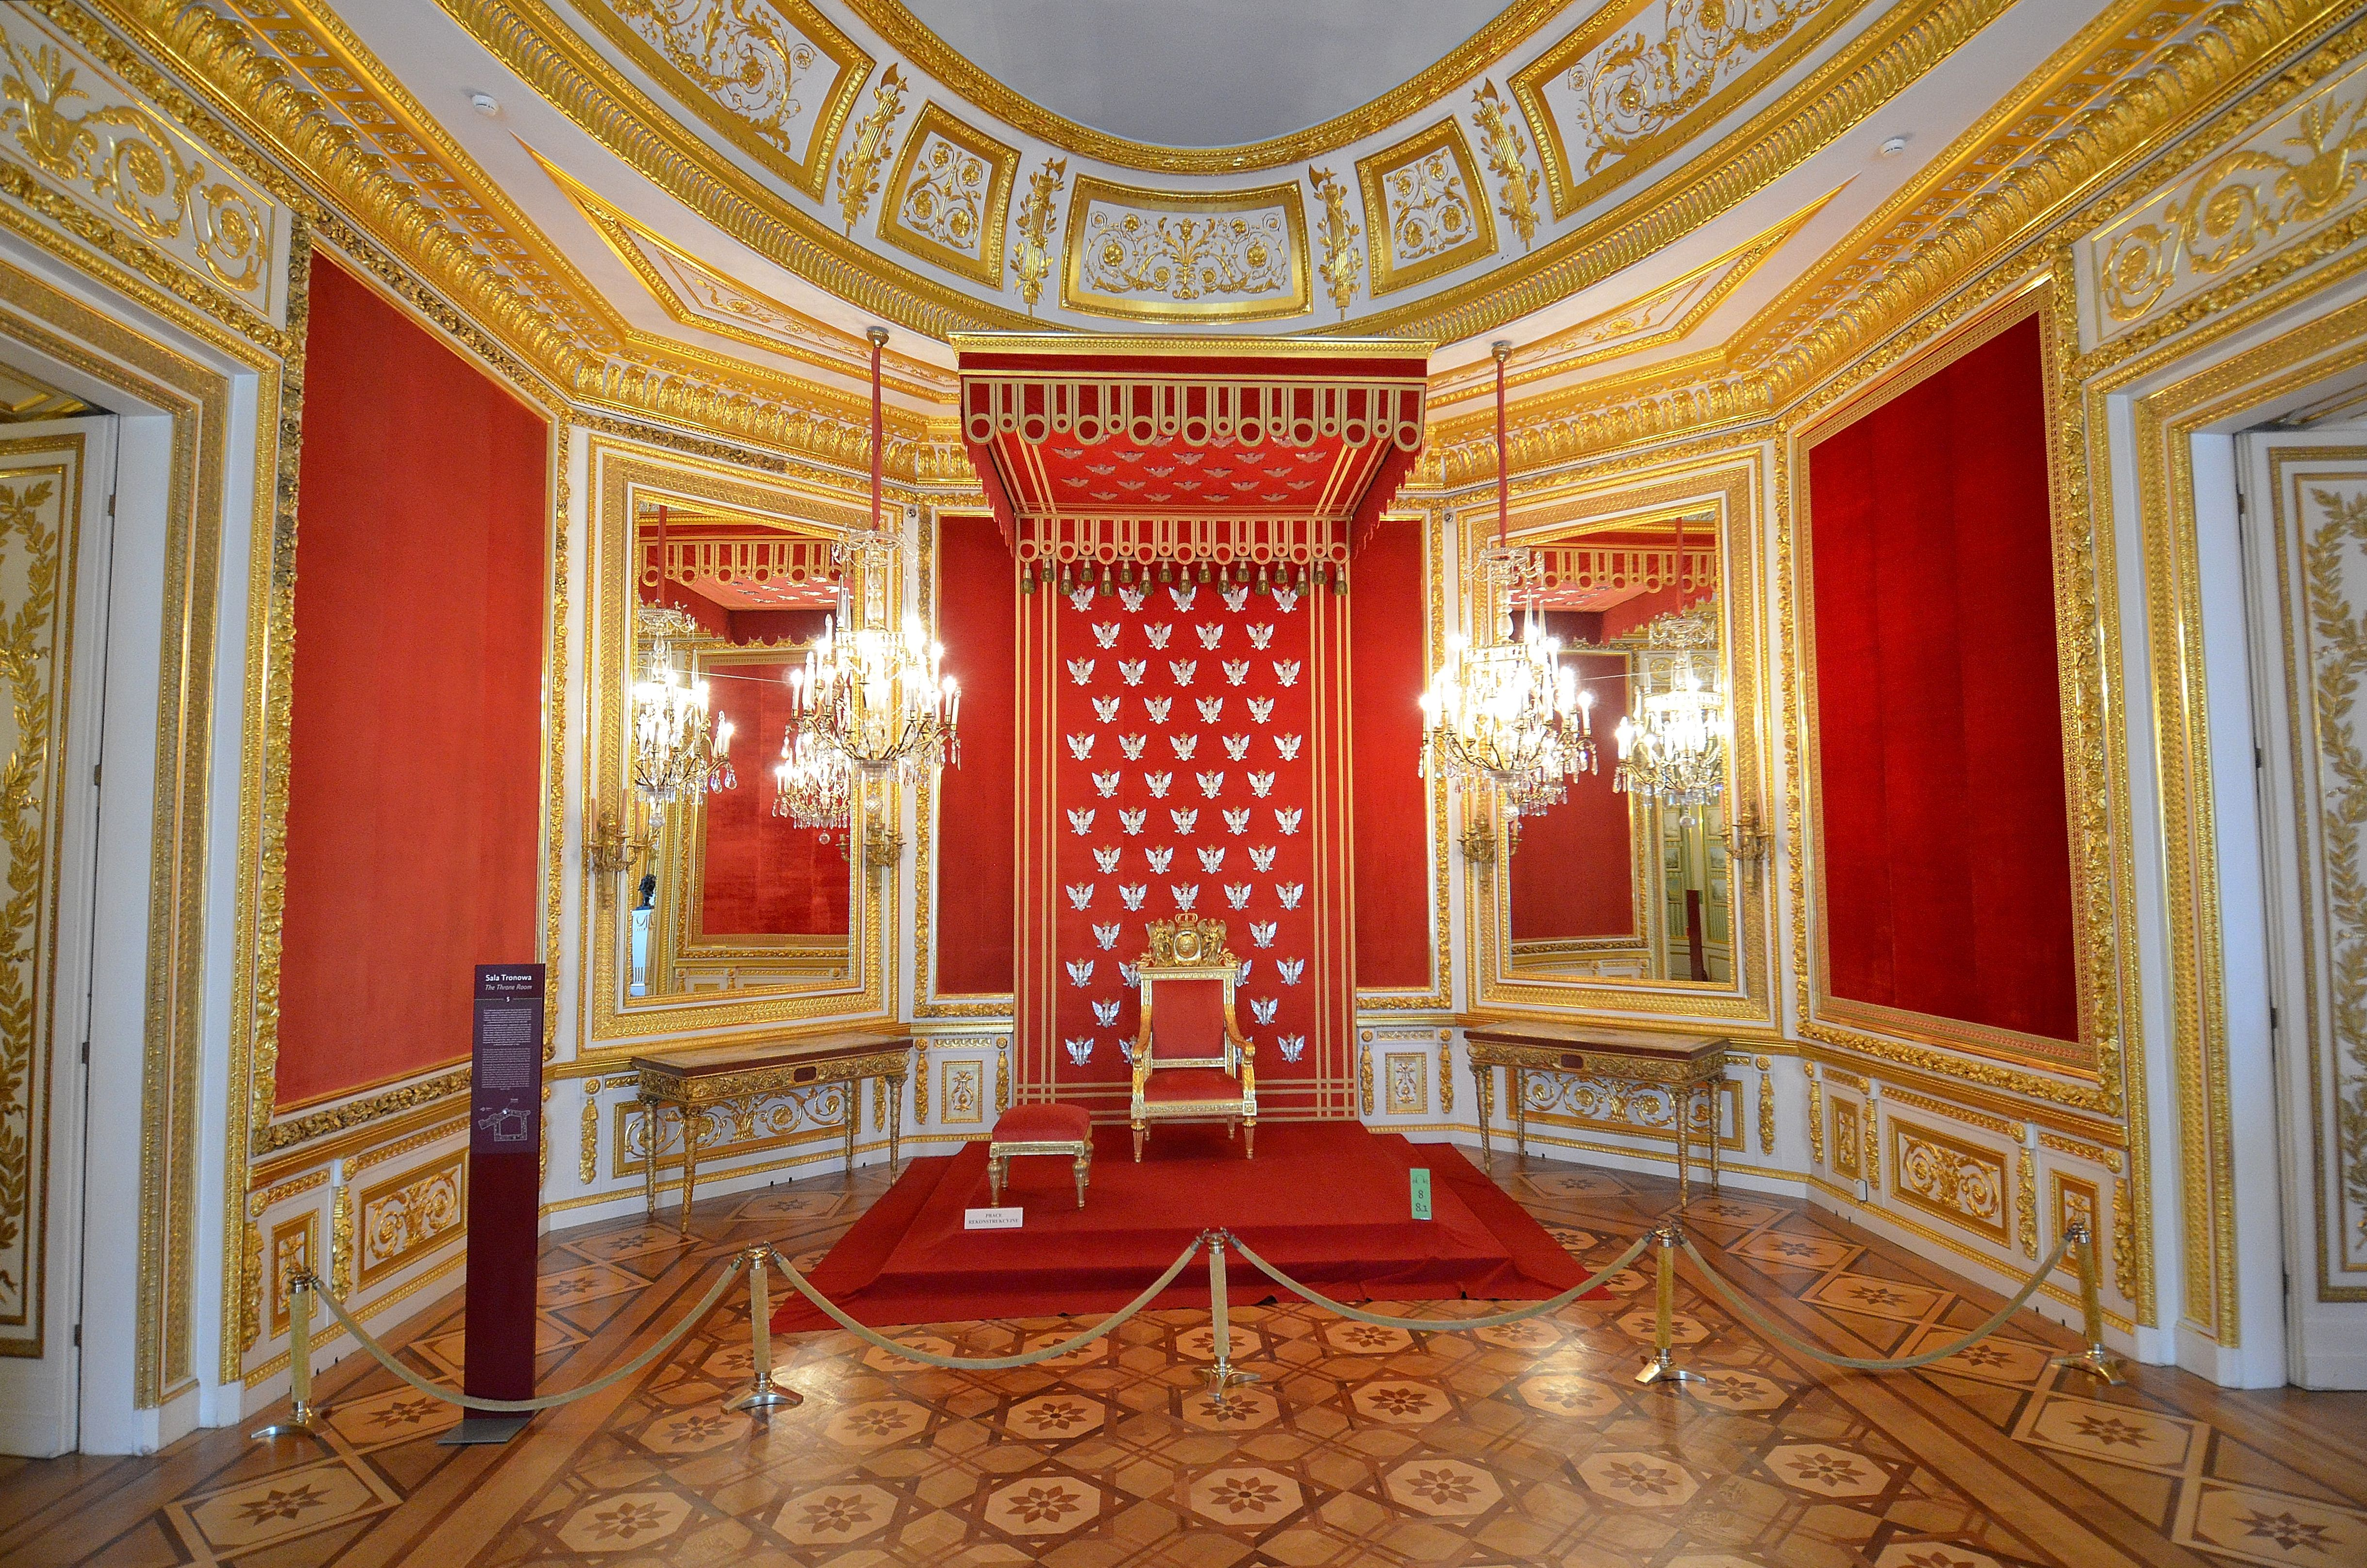 File:Throne Room Royal Castle in Warsaw.JPG - Wikimedia Commons